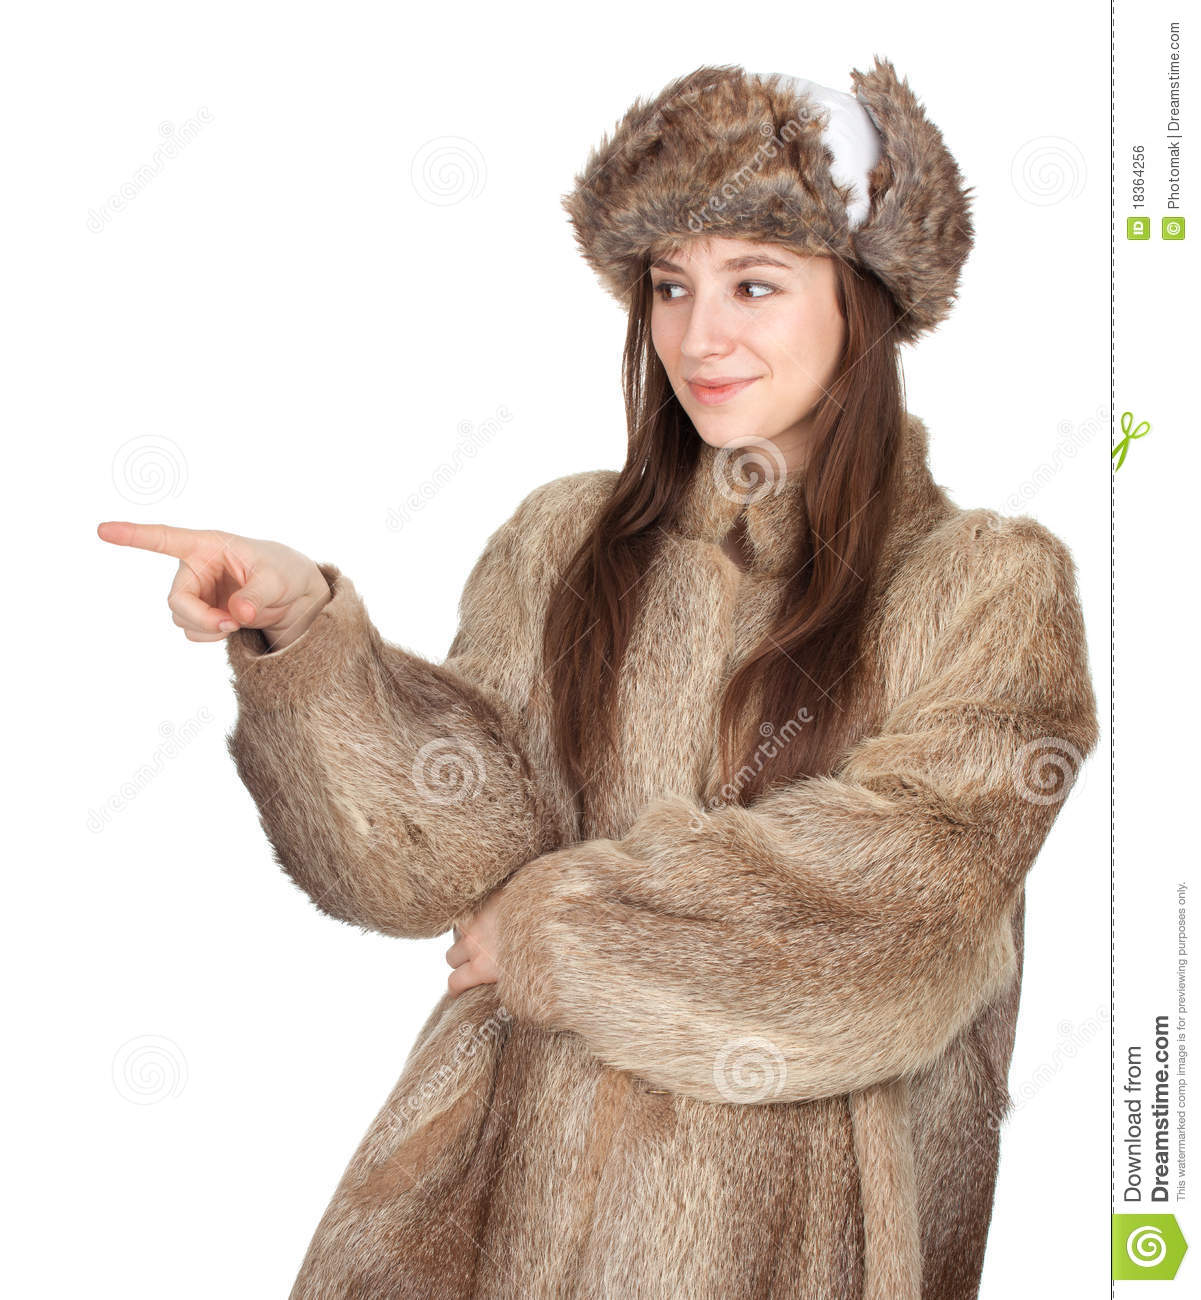 Woman In A Fur Coat And Hat Pointing Royalty Free Stock Image ...